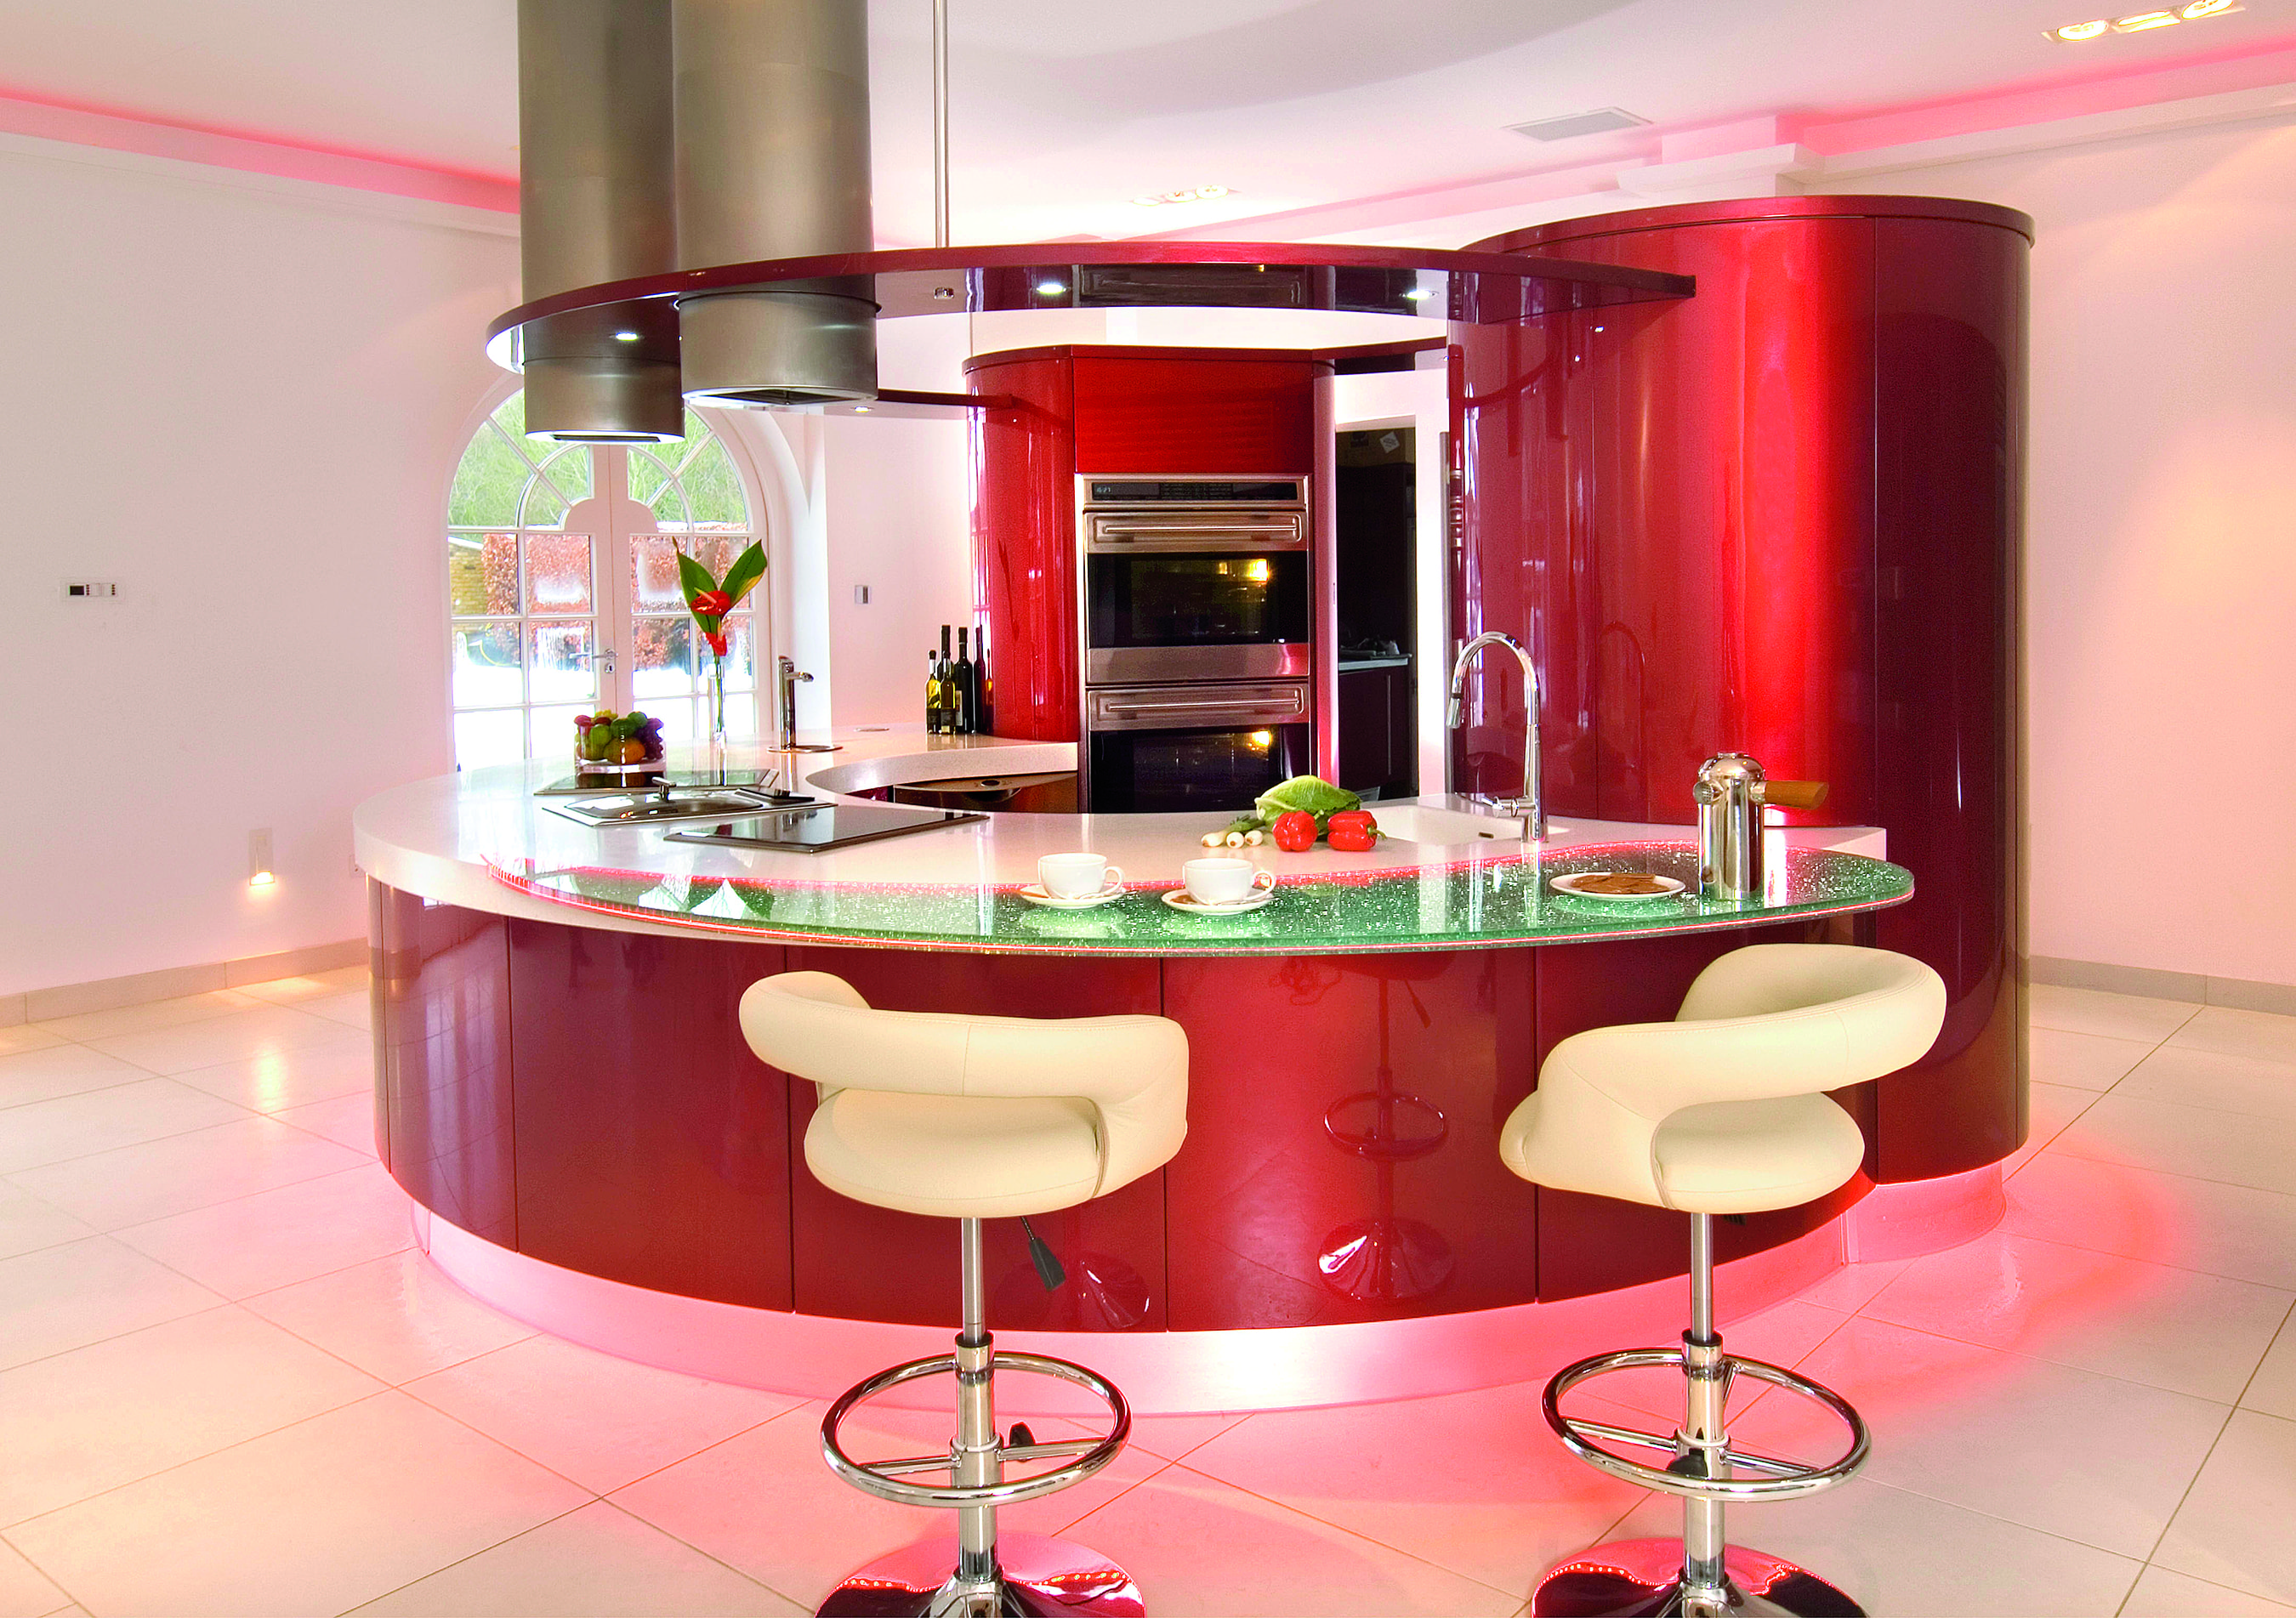 Beau The Hub Of An English Manor House Is Its Iconic, Eye Candy Kitchen. But The  Cooks Are Its Heart.